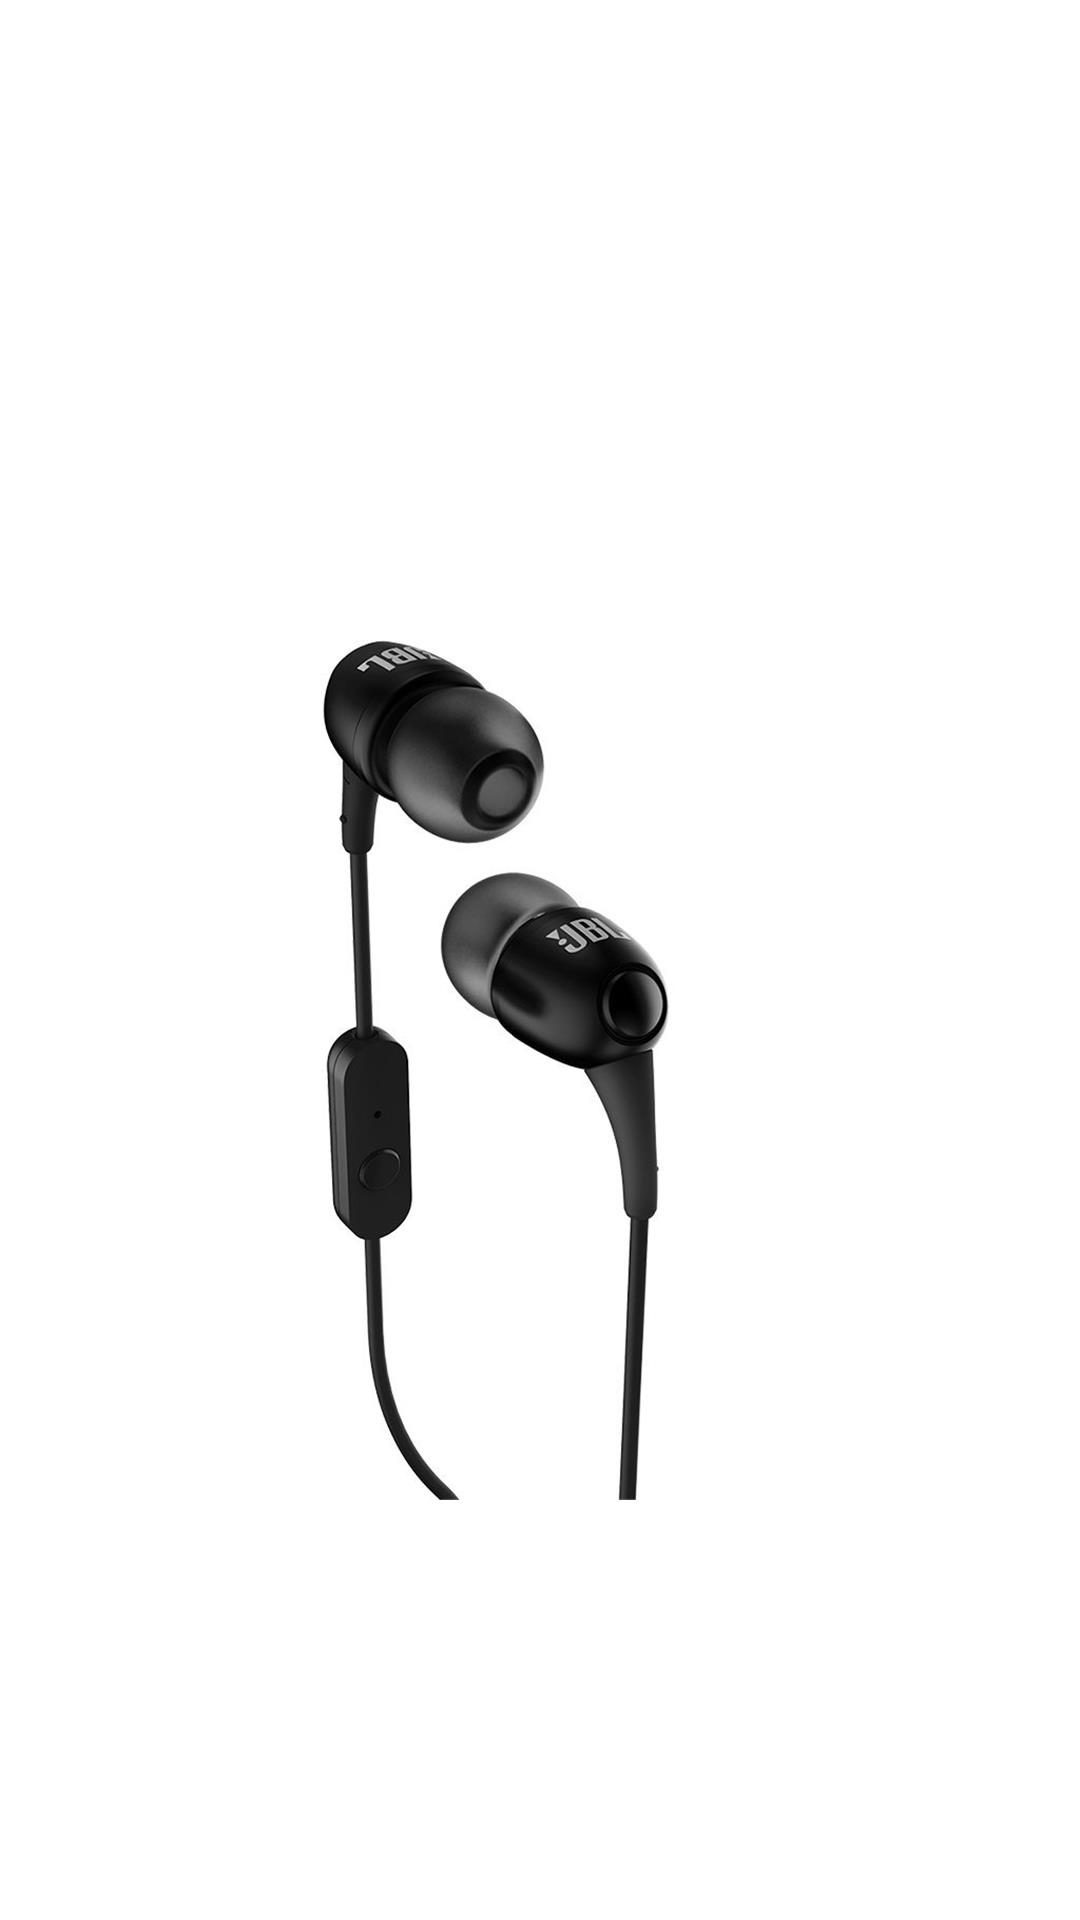 Buy Jbl T100a Wired Earphone With Mic Black Online At